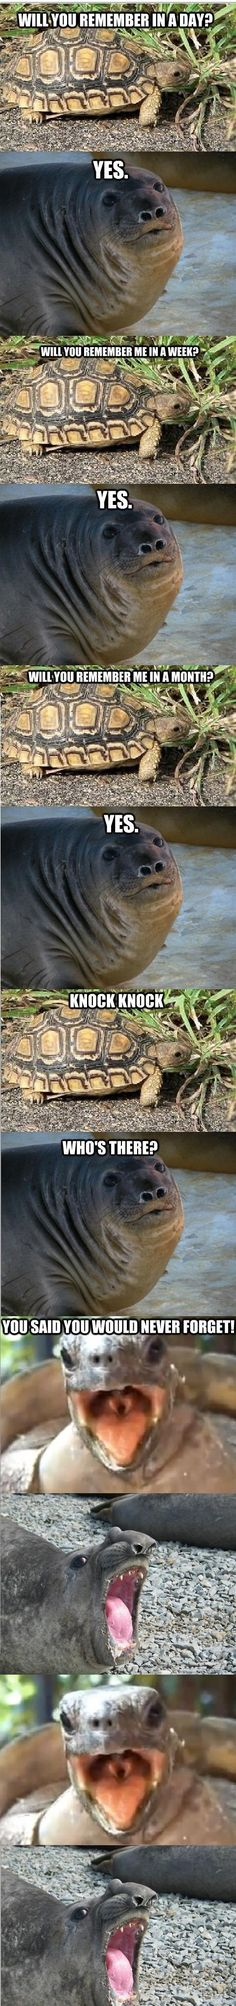 The Tortoise and the Sea-Elephant. Moral of the Story: Never Forget. (Huh. but an ELEPHANT SEAL, tho.)